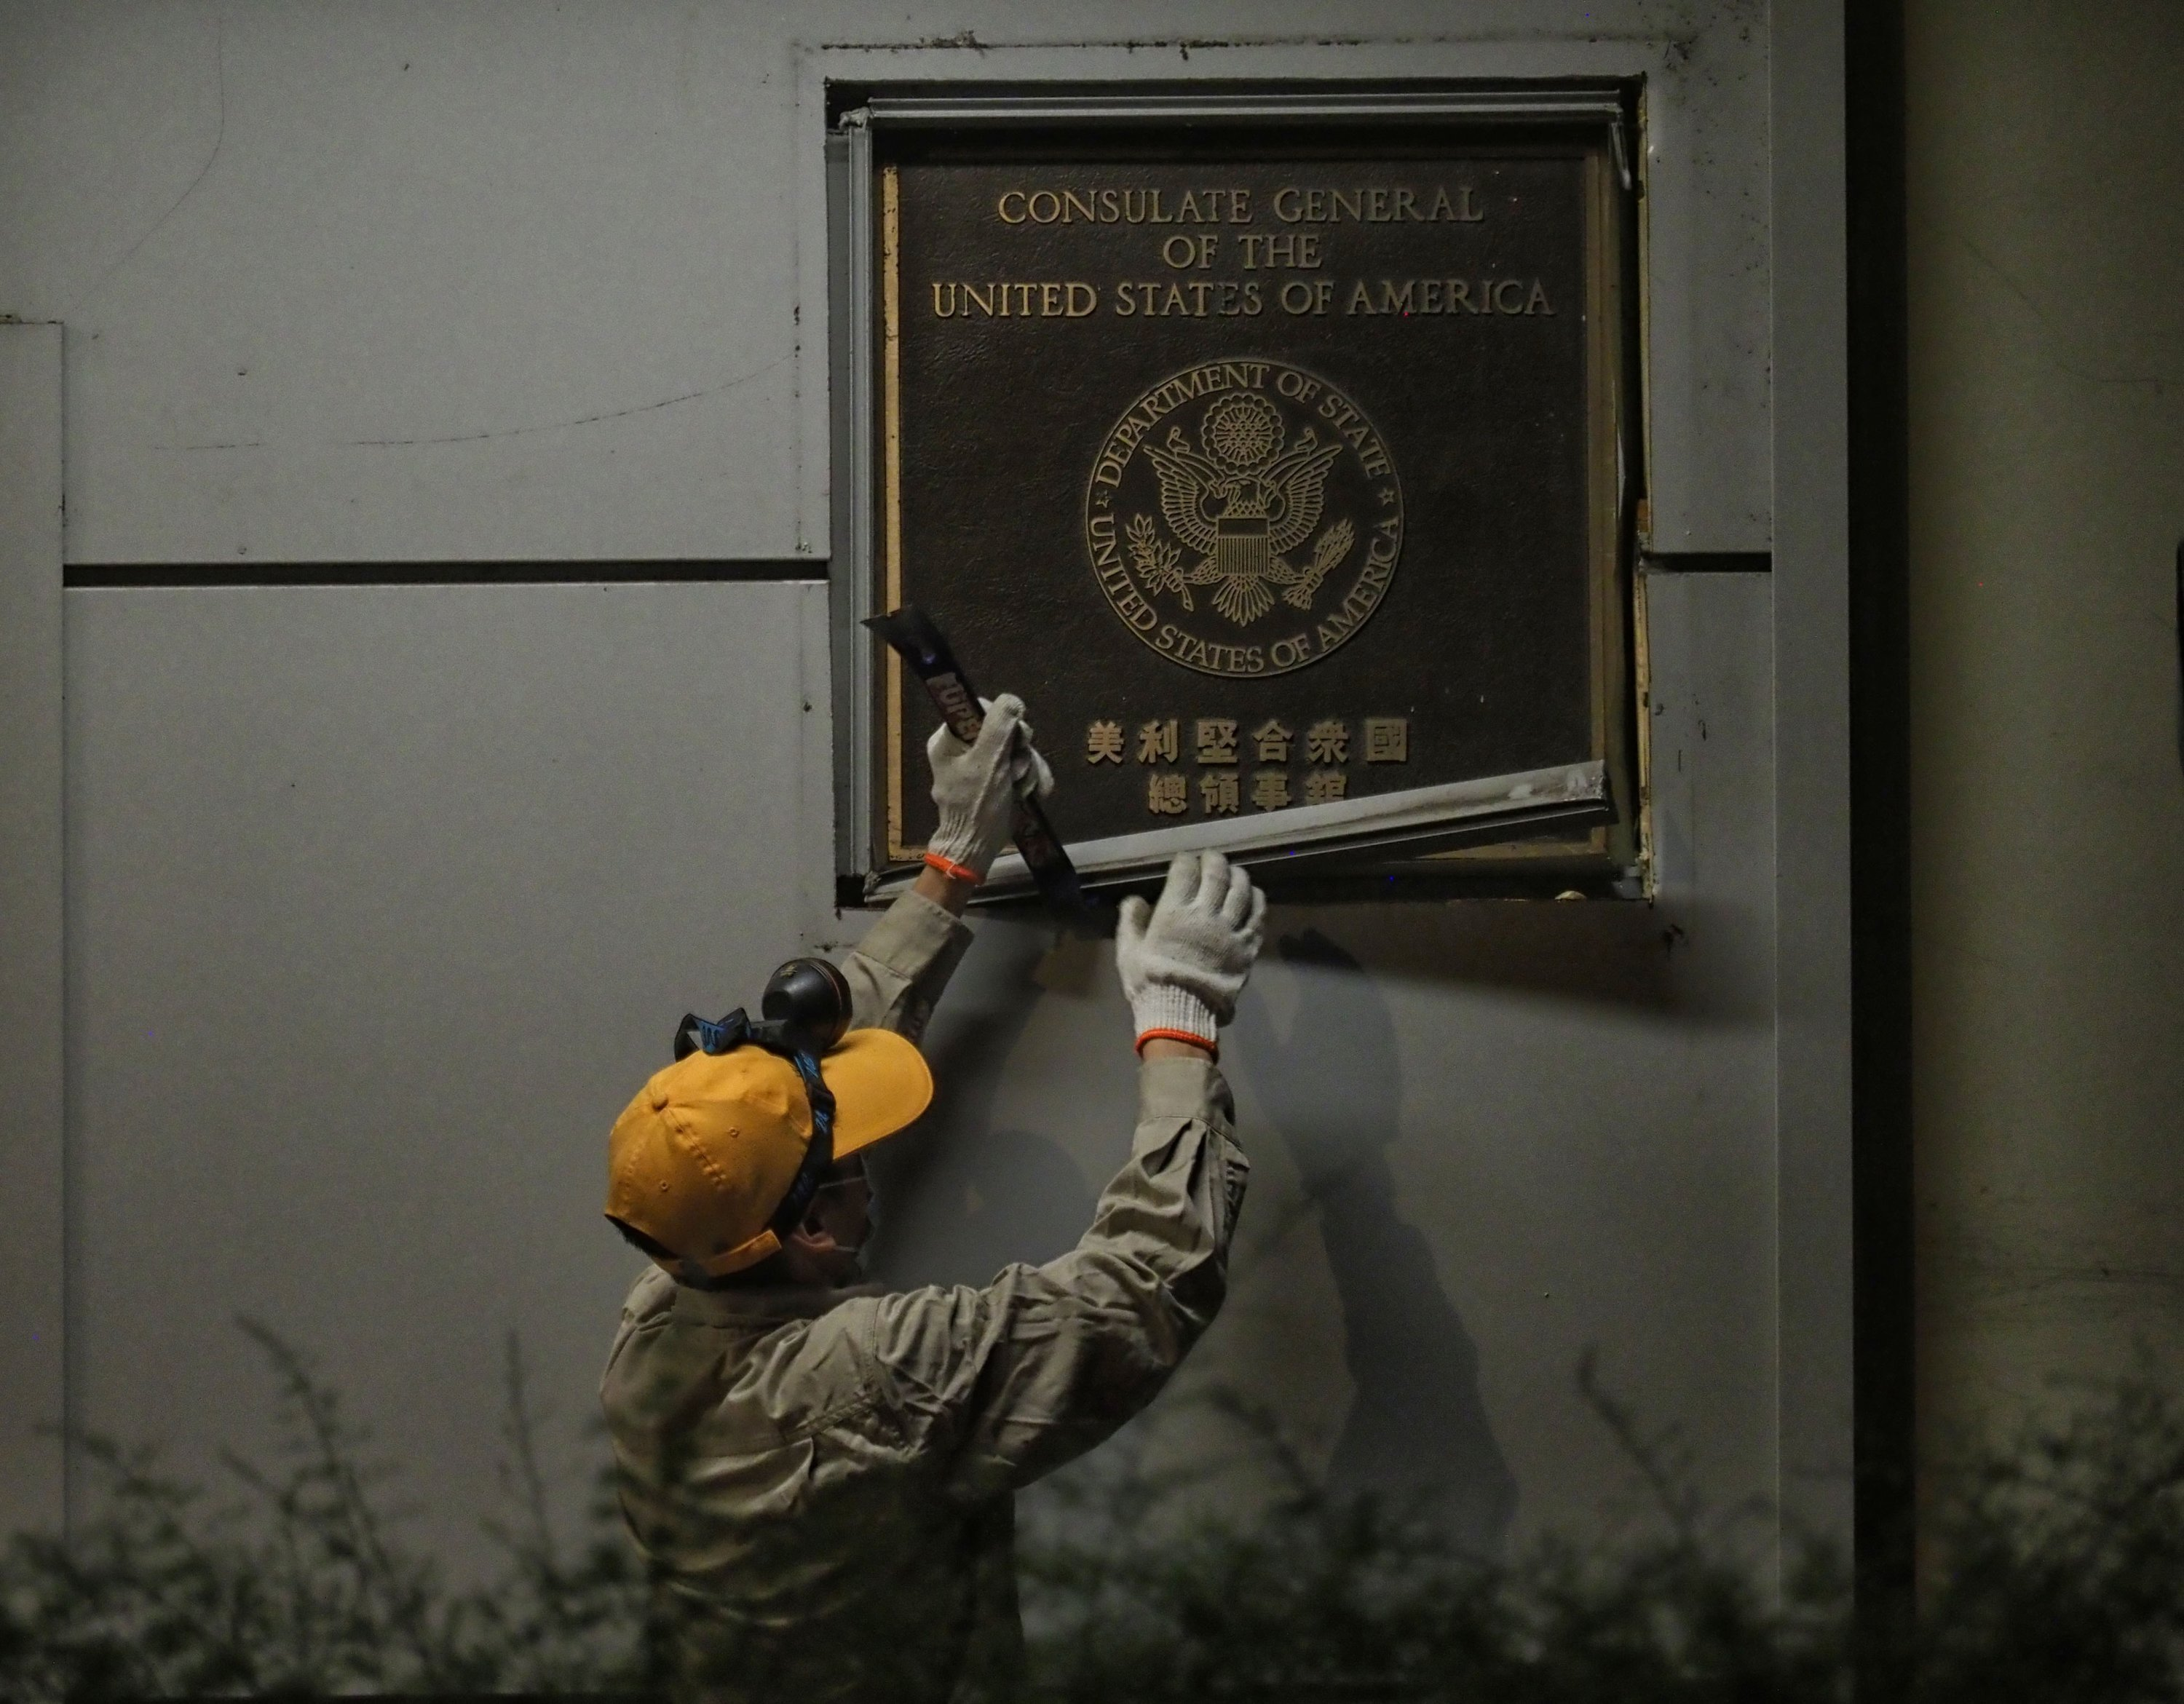 A worker removes a plaque from the U.S. Consulate General in Chengdu, Sichuan, China, July 26, 2020. (Photo by Getty Images)